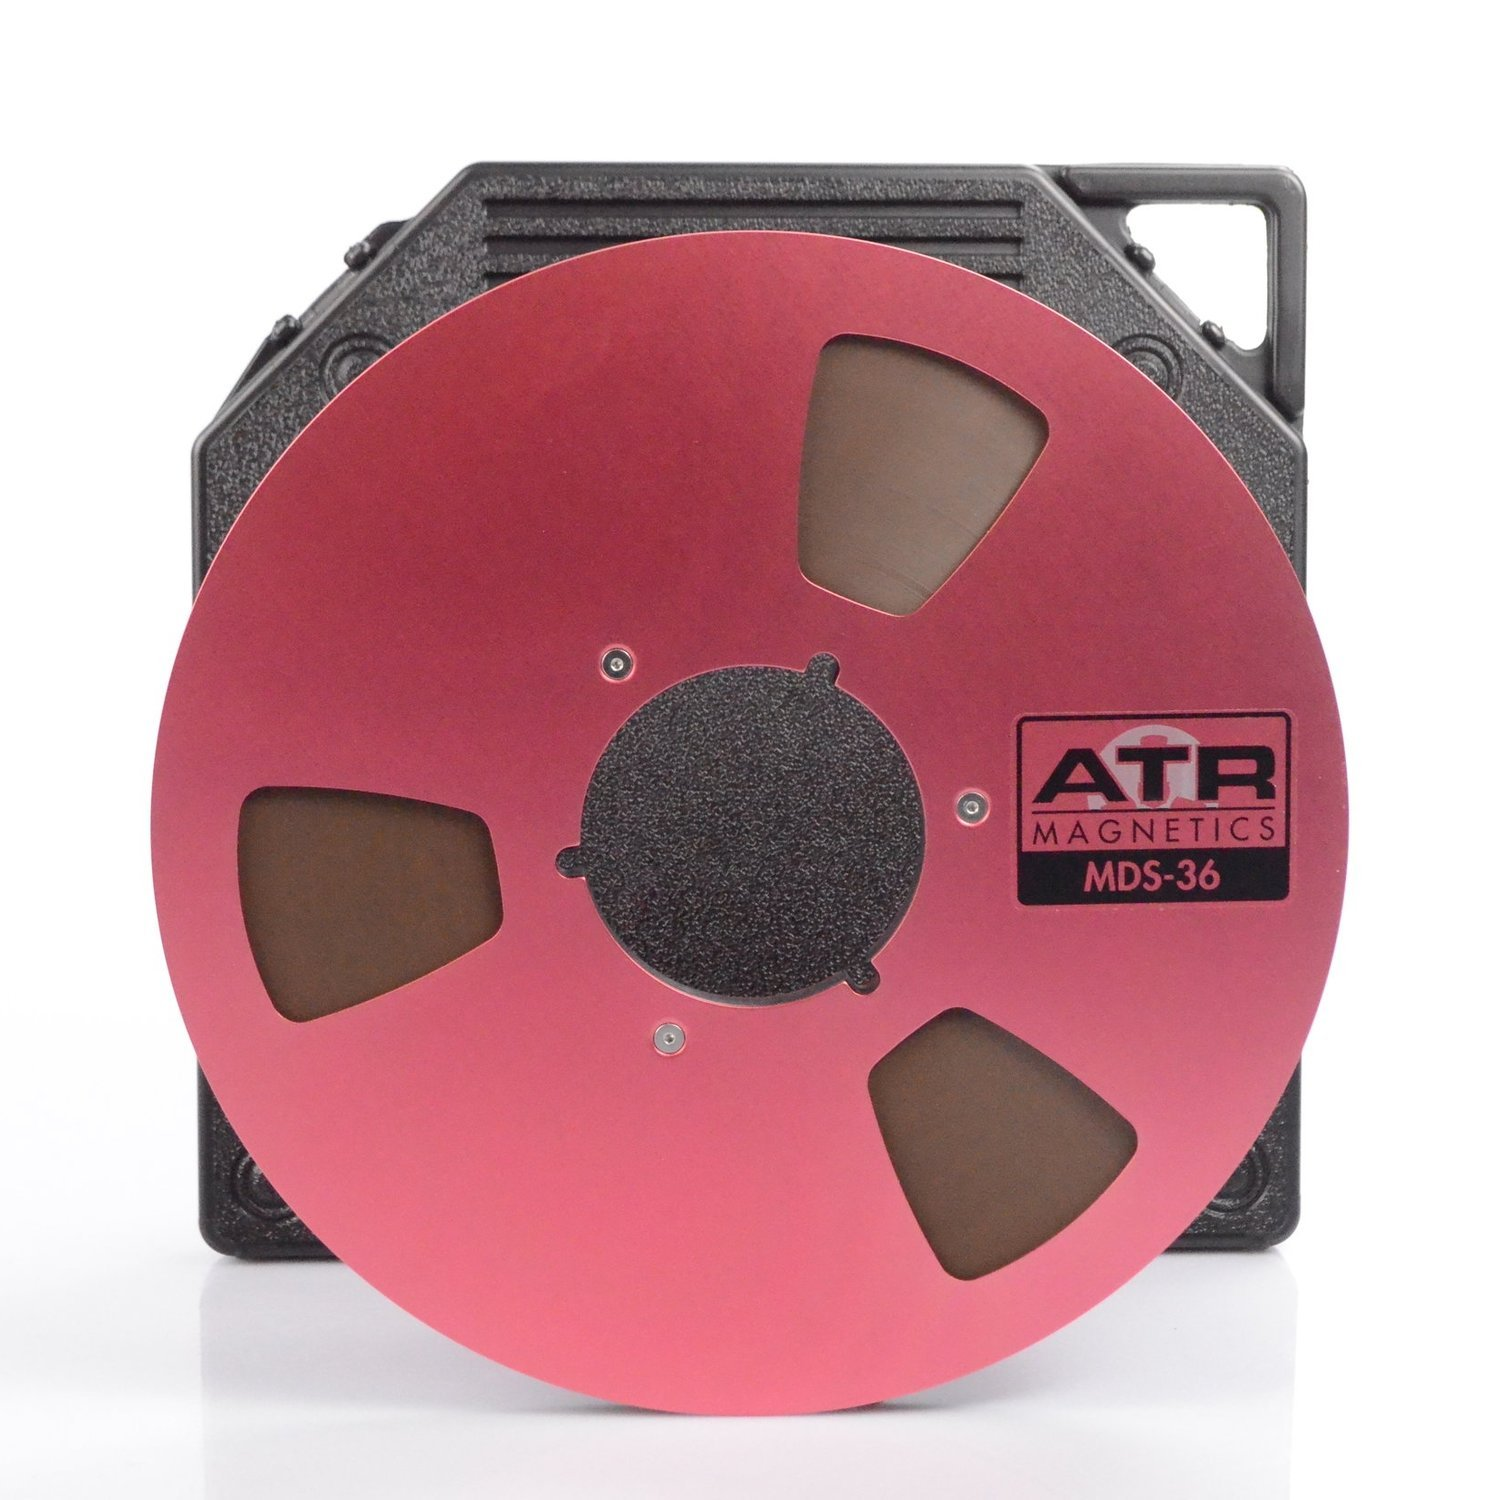 "ATR MDS-36 Tape 1/4 x 3600' 10.5 NAB Metal Reel Tape Care Boxâ""¢"